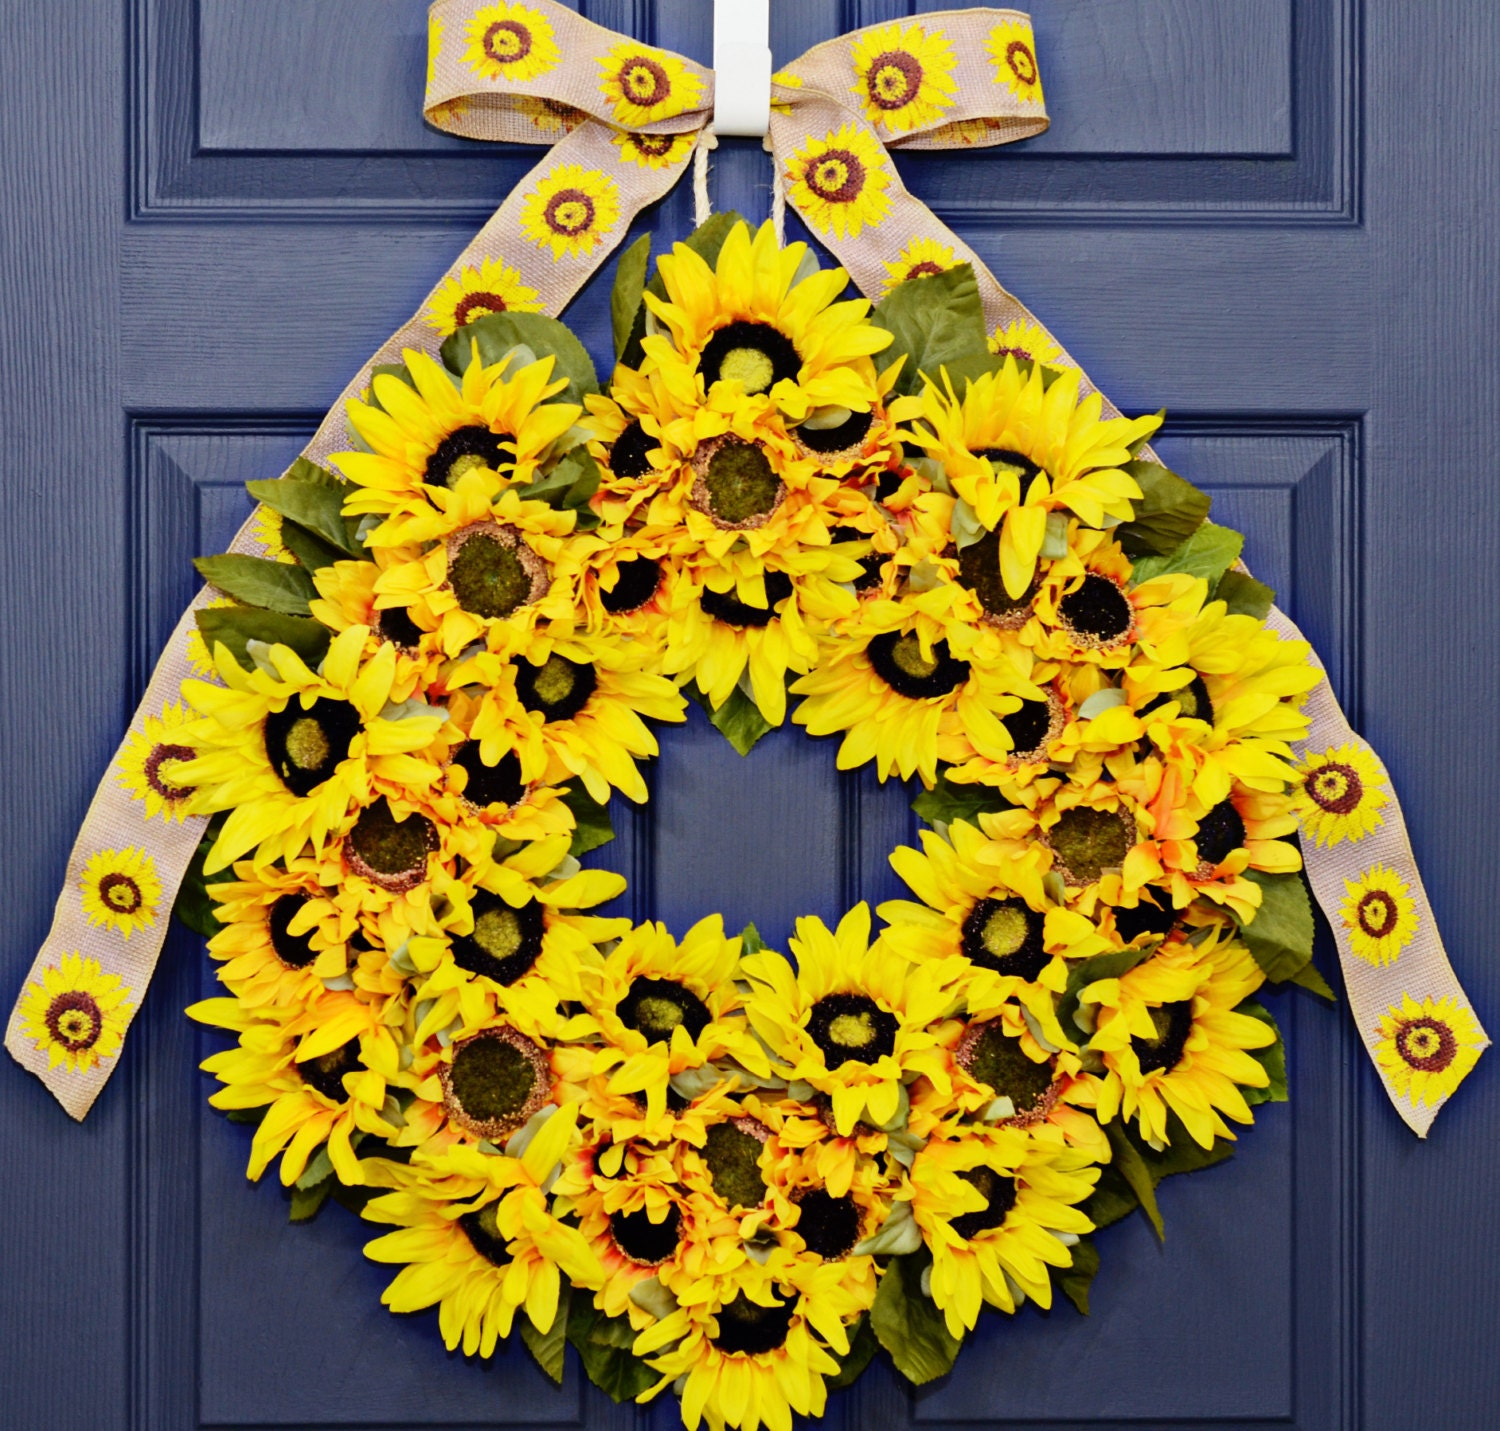 Sunflower Home Decor: Sunflower Wreath Home Decor Year Round By JuliesHomeCreations